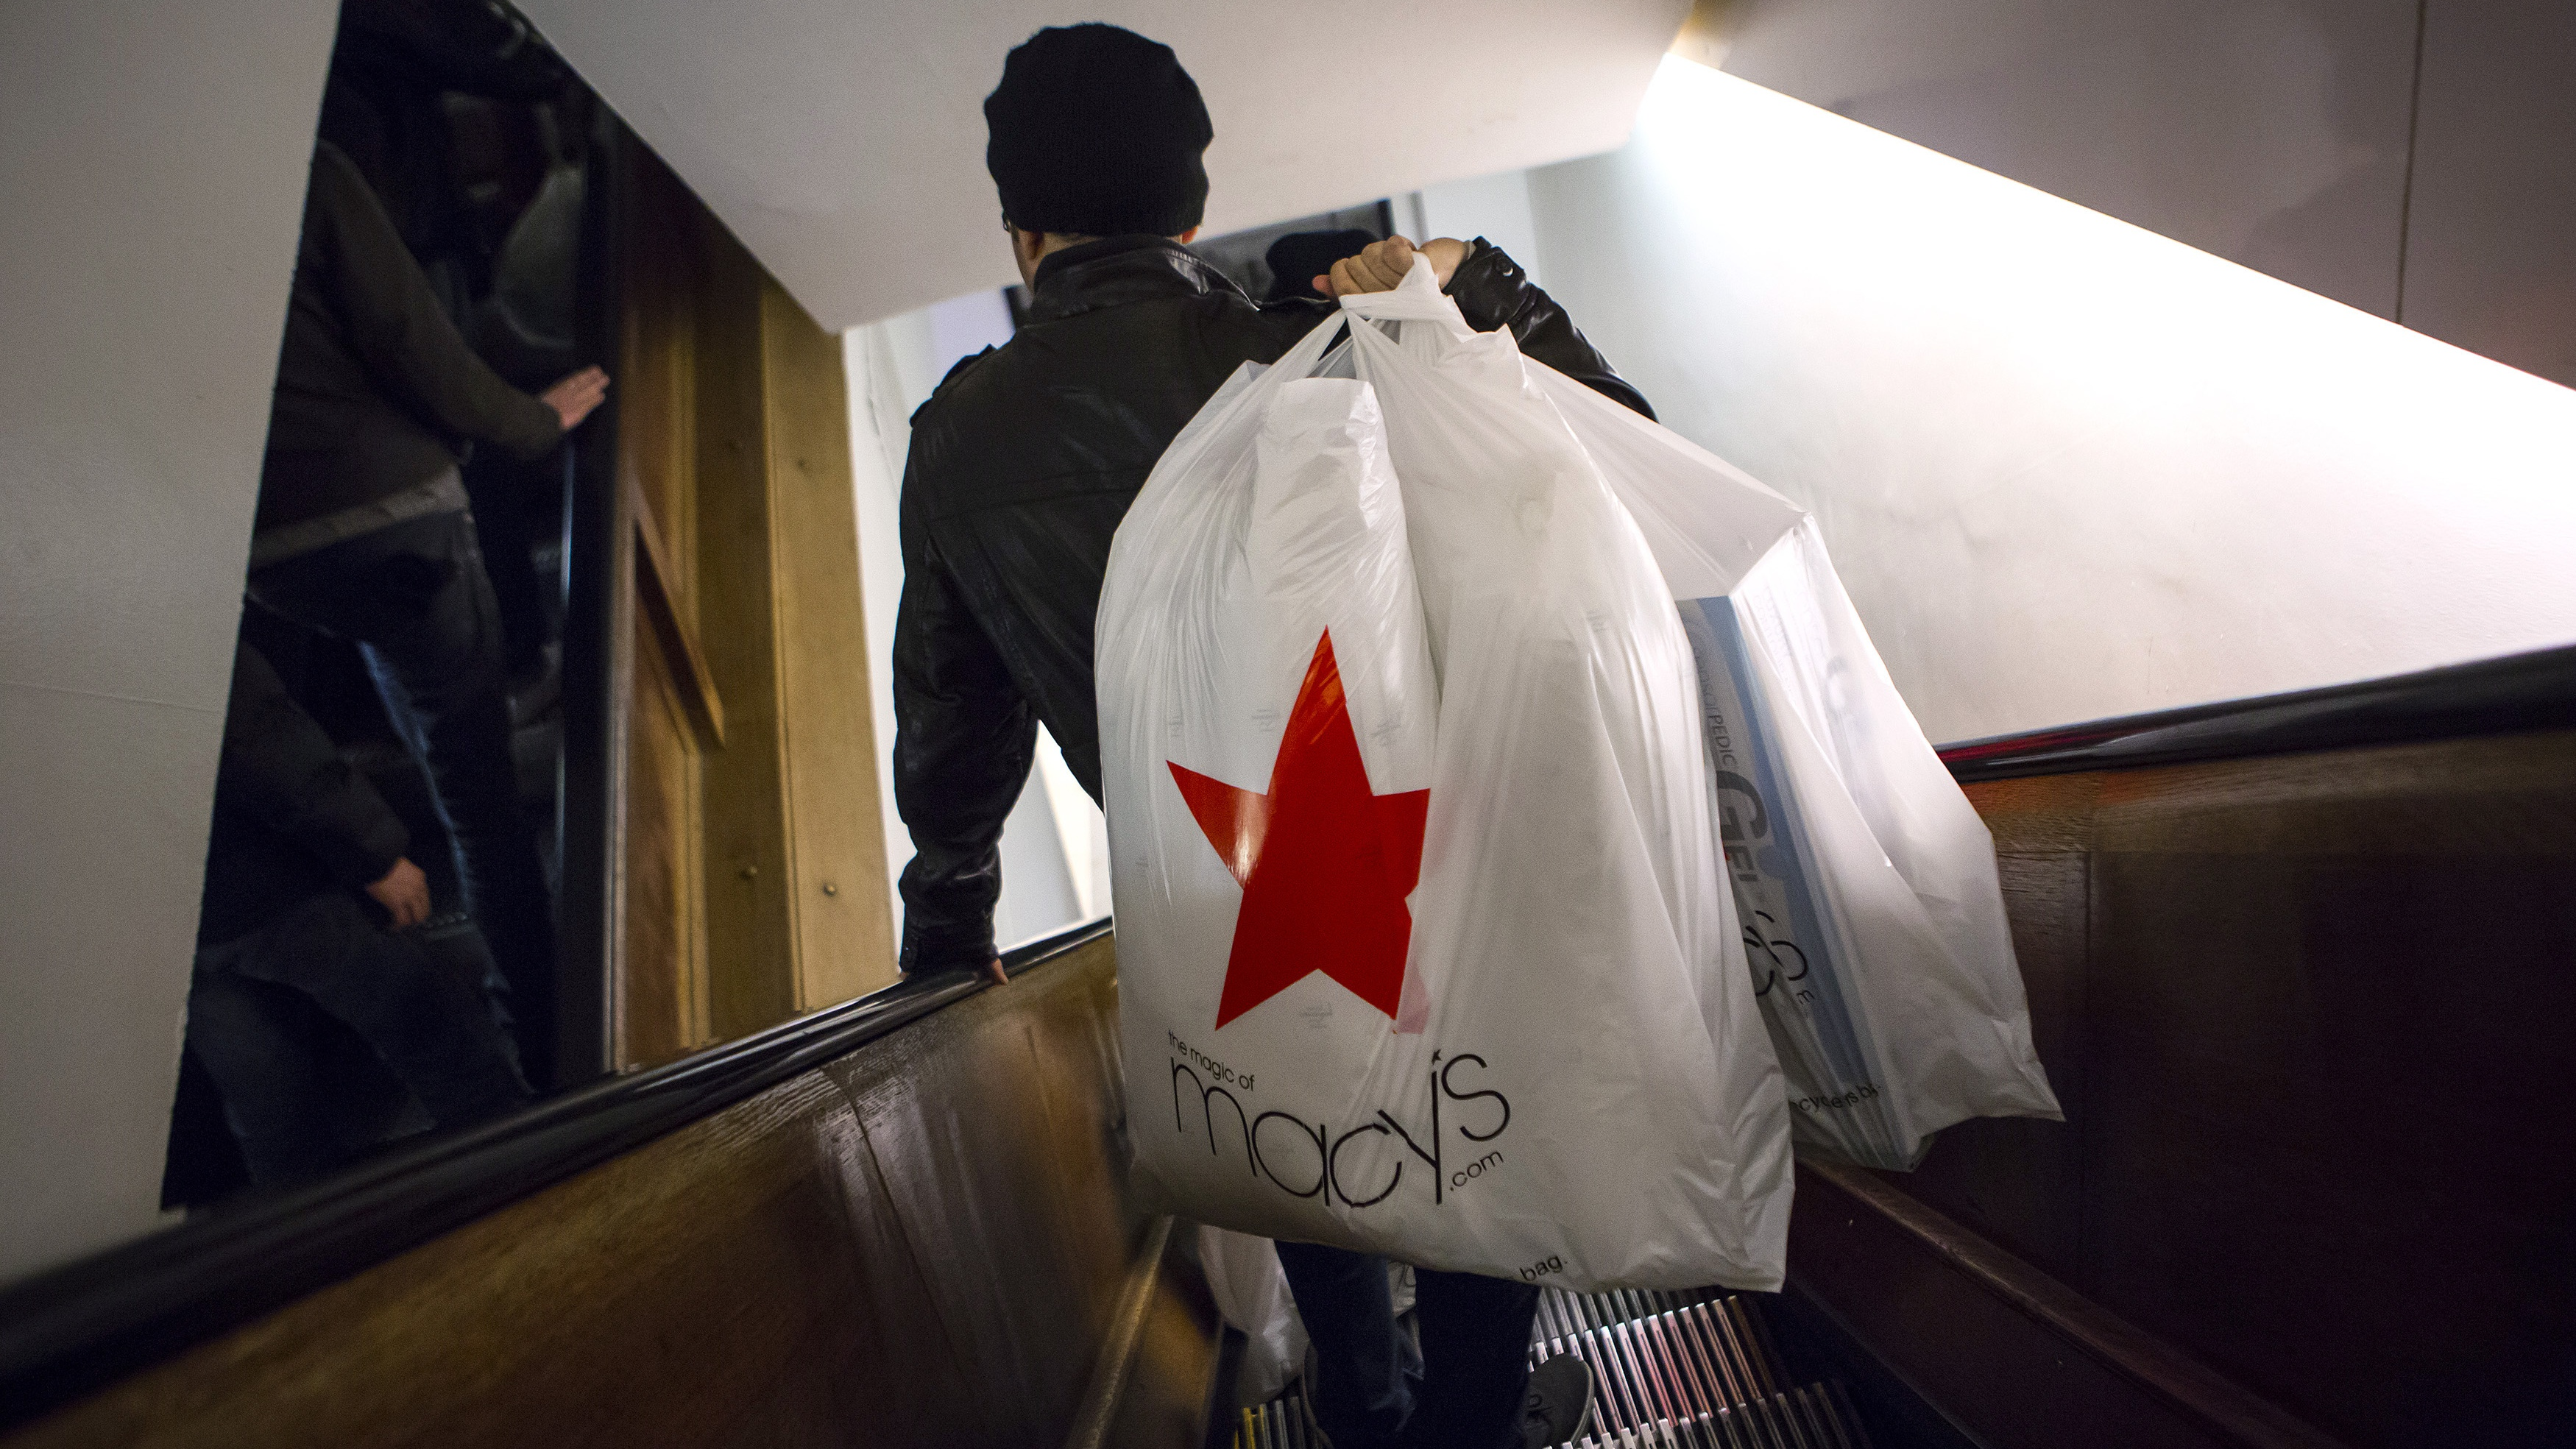 Shoppers ride the escalator at Macy's Herald Square in New York in this November 28, 2013